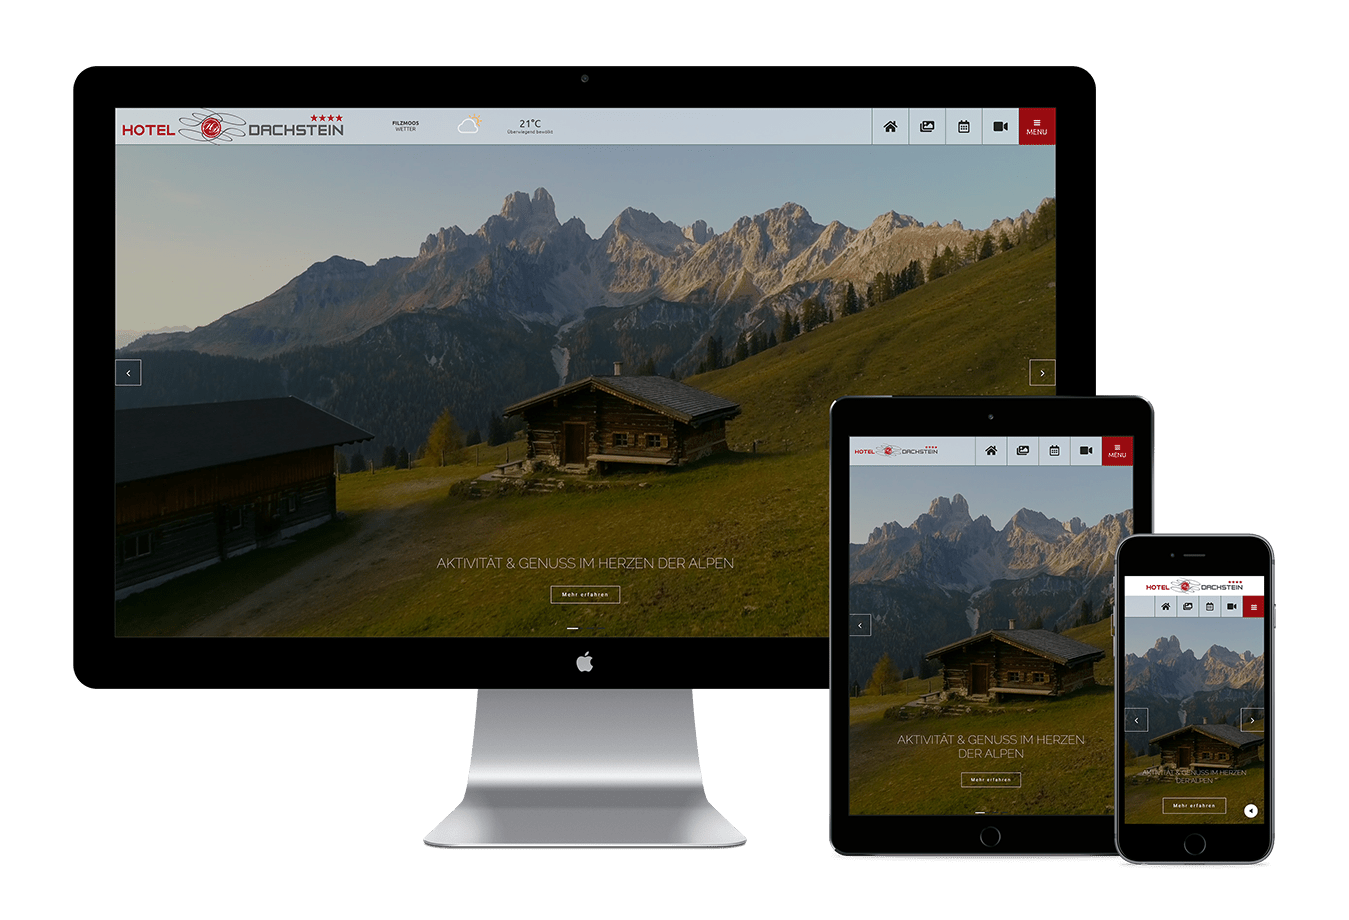 Online Marketing United - Hotel Dachstein